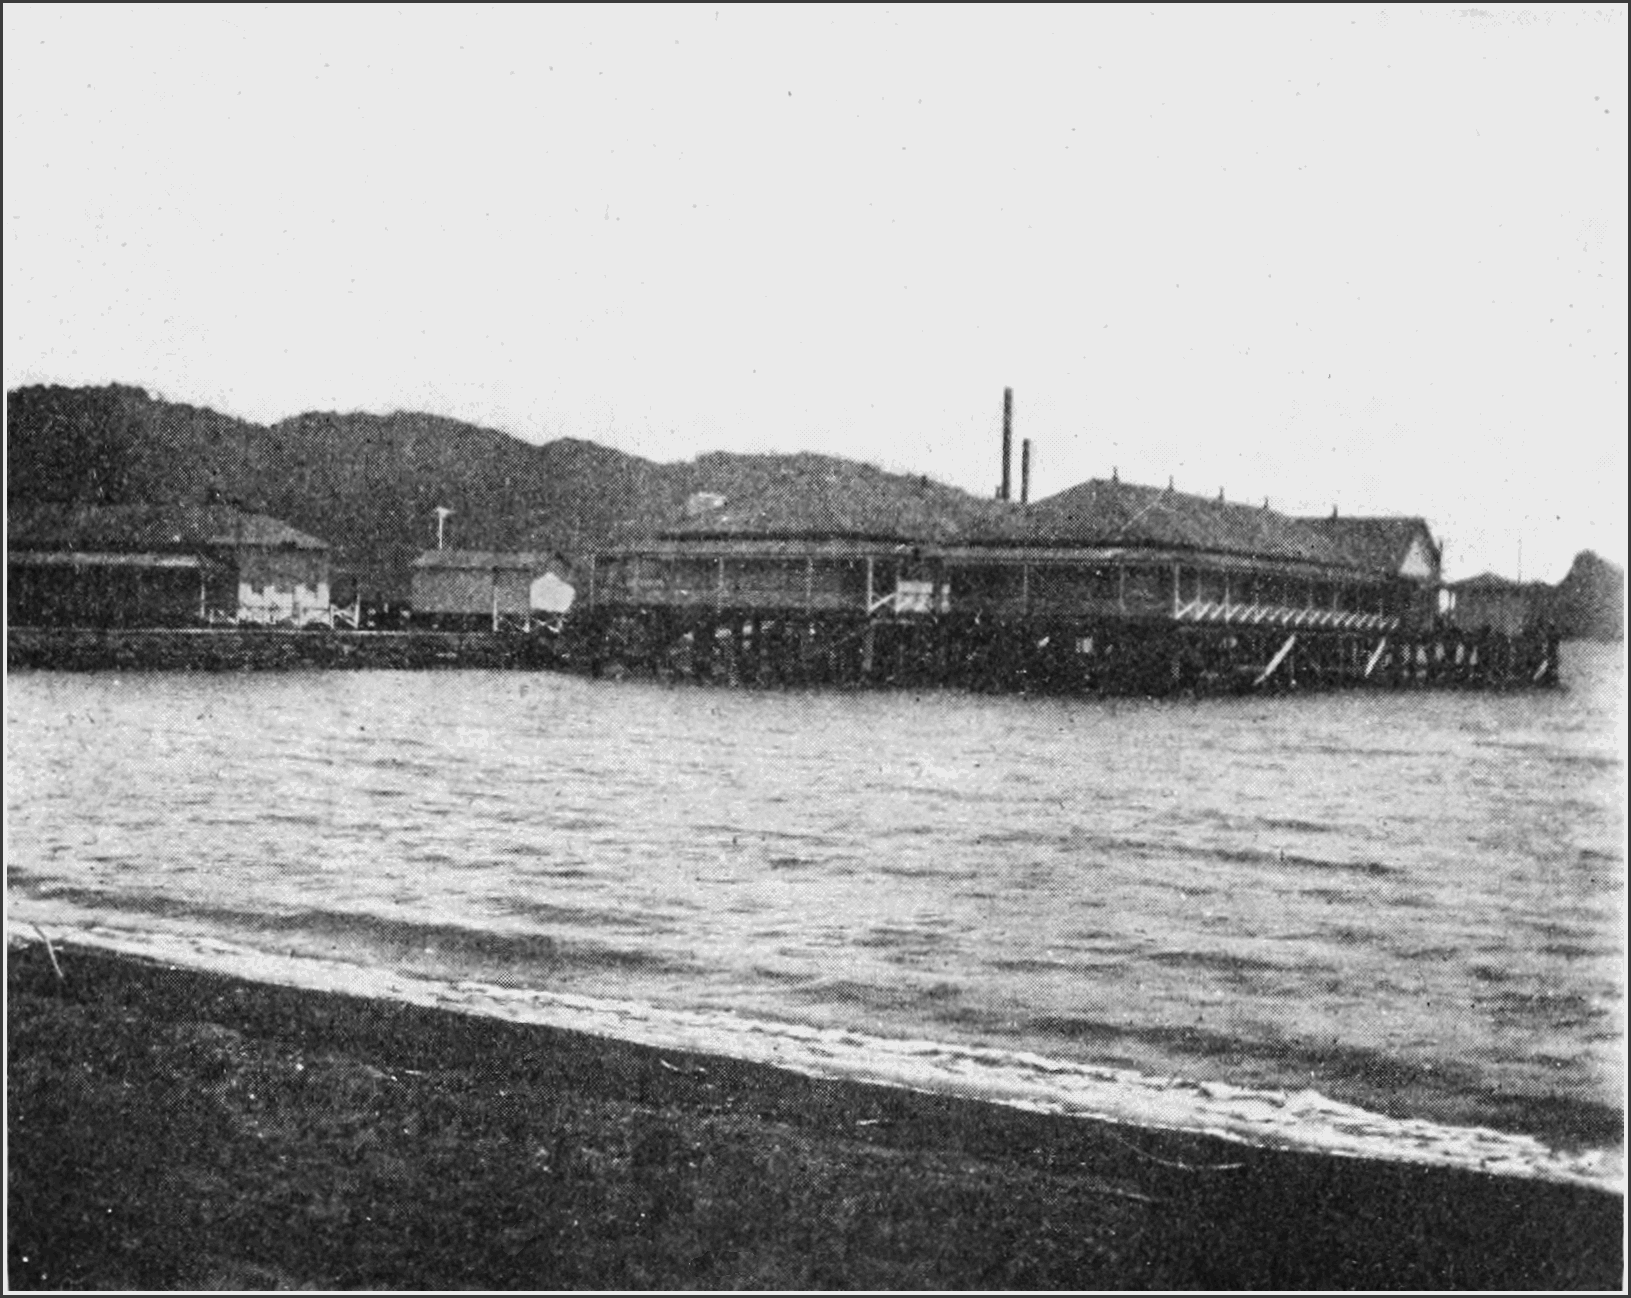 PSM V82 D373 Disinfecting wharf and bathhouse at marivales in the philippines.png